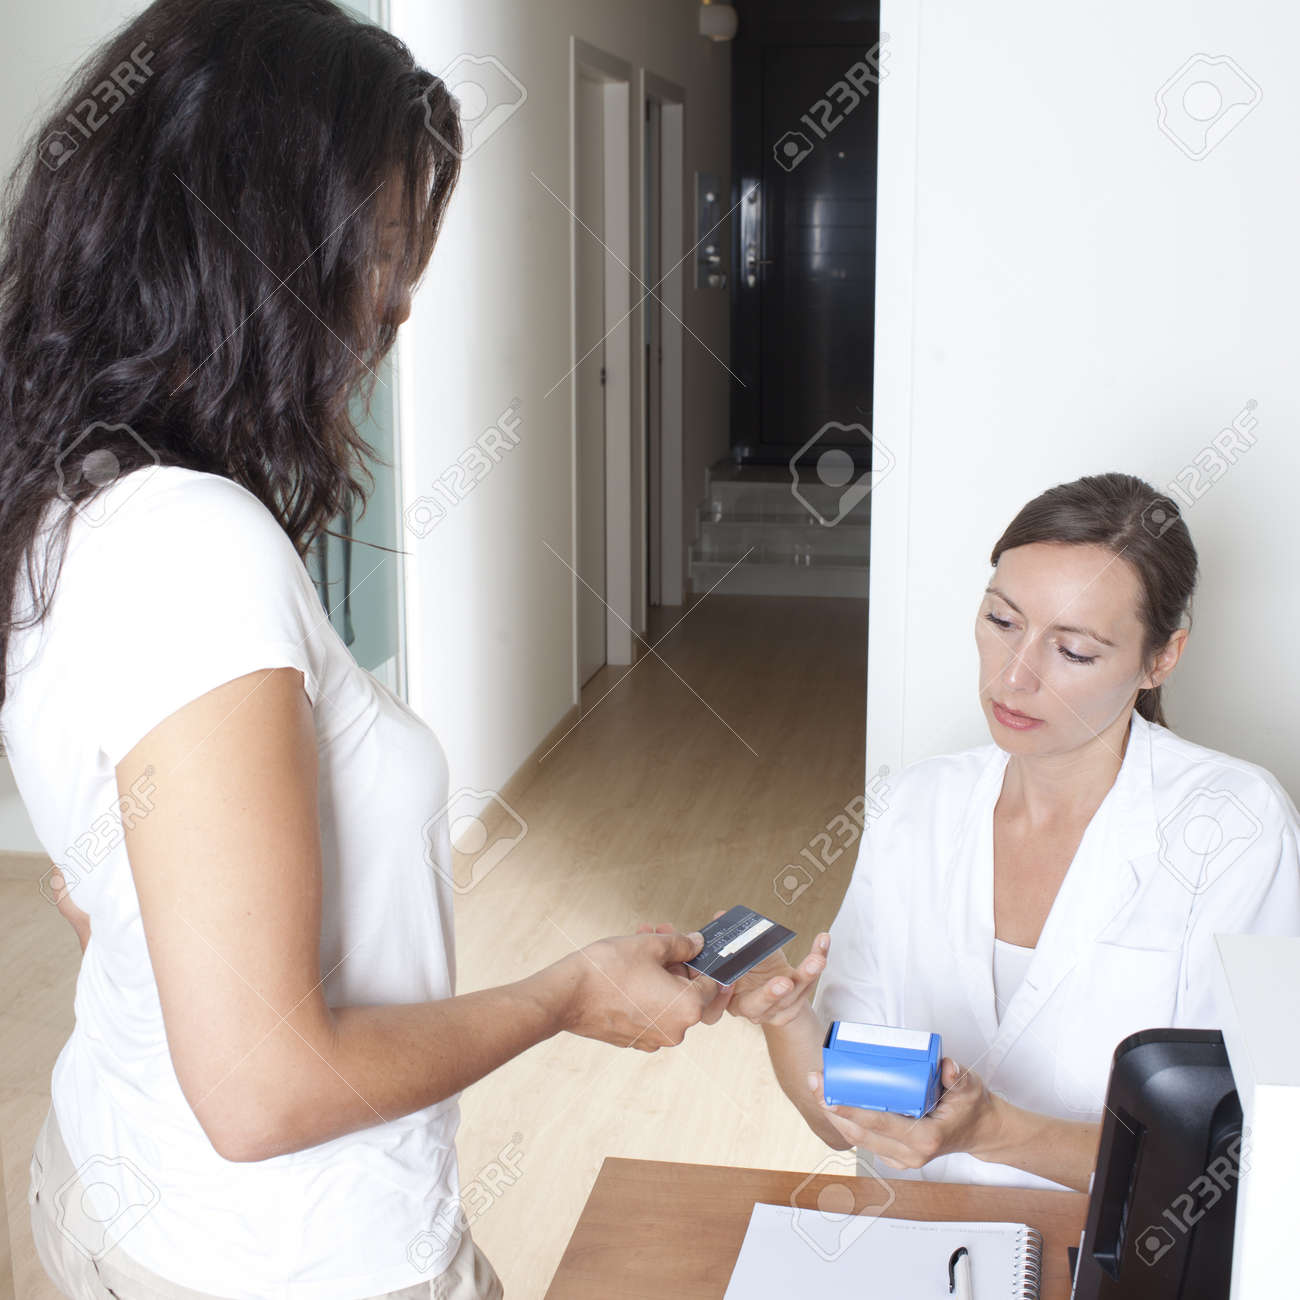 Patient paying for medical treatment with creditcard Stock Photo - 23404608